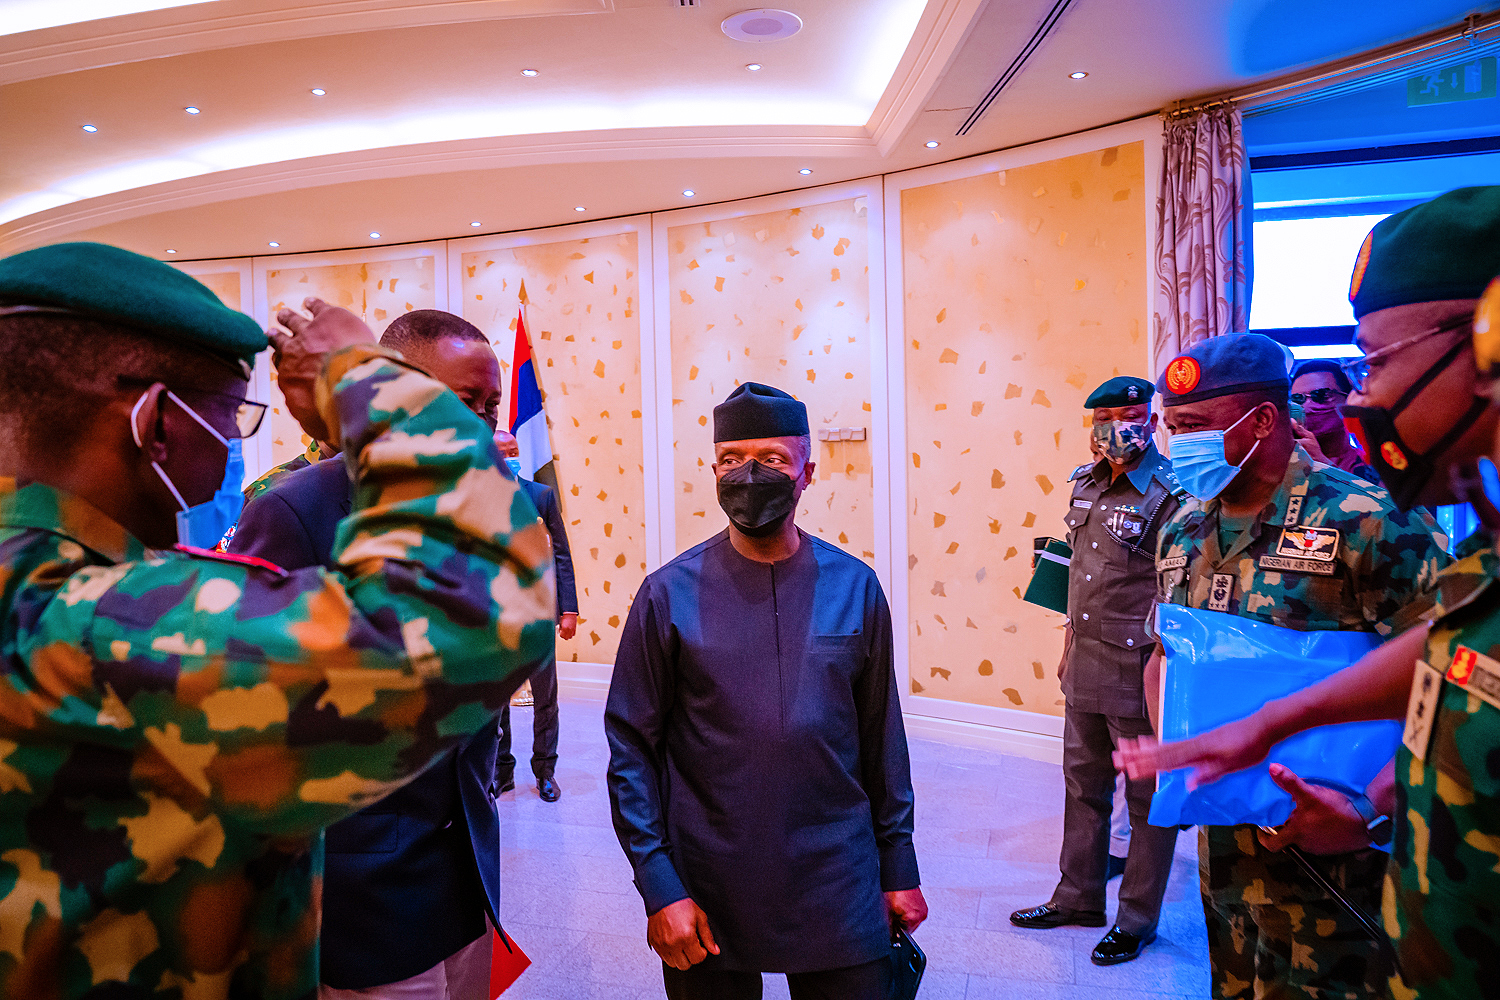 President Buhari Receives Security Briefing From Service Chiefs On 19/08/2021